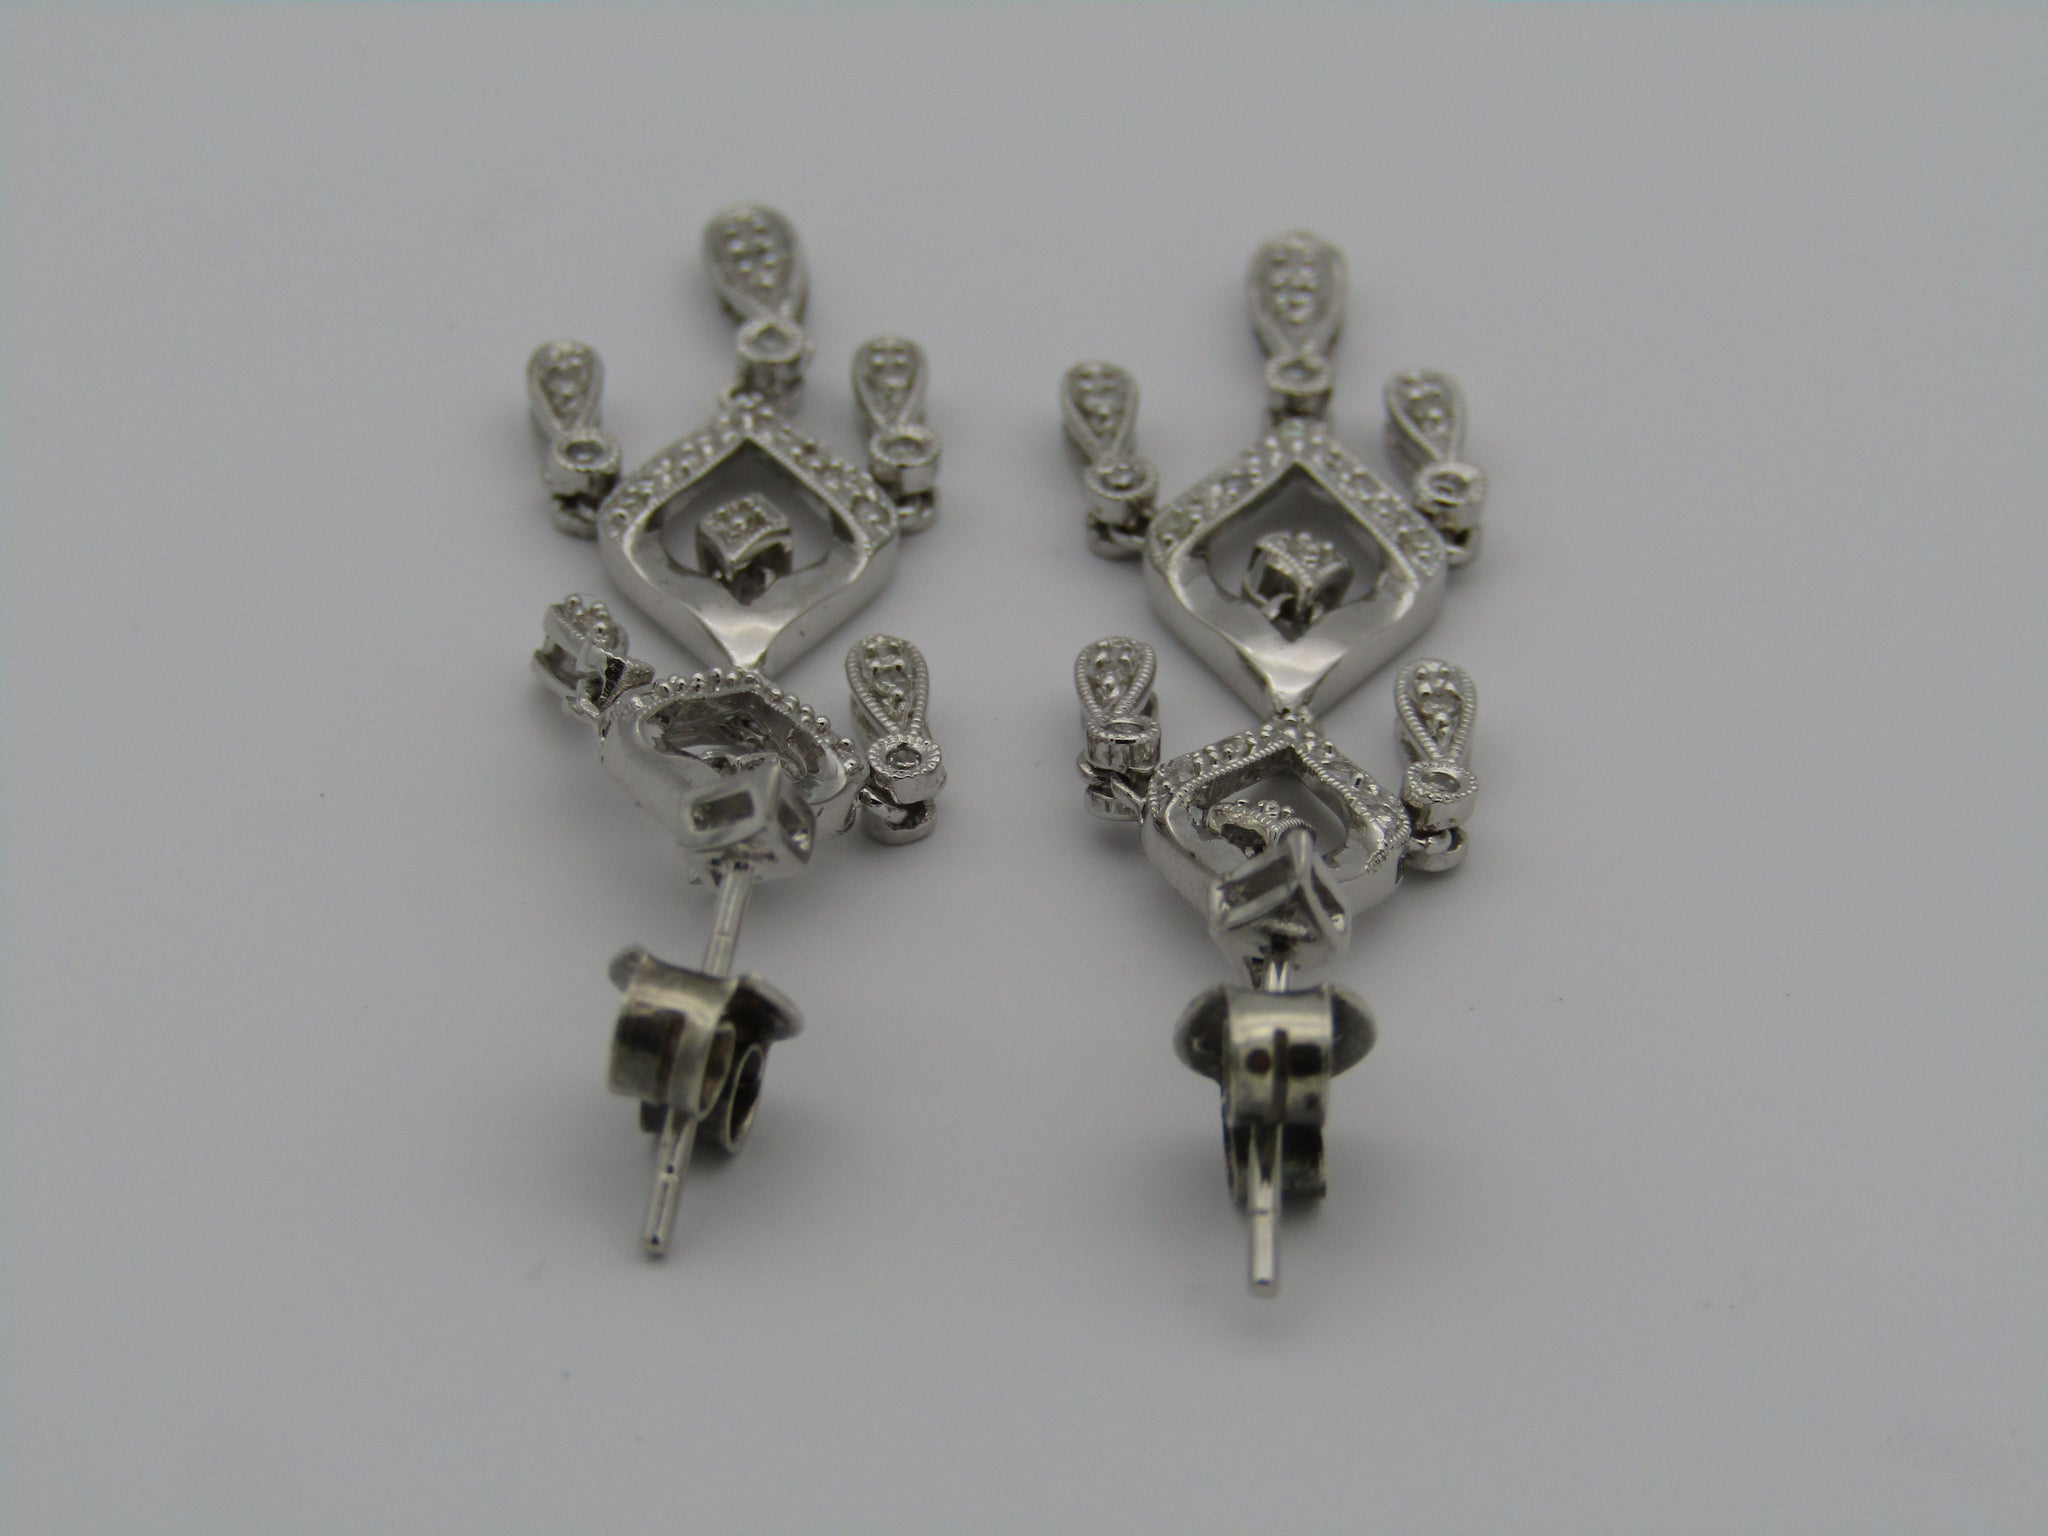 14kt white gold chandelier diamond earrings.